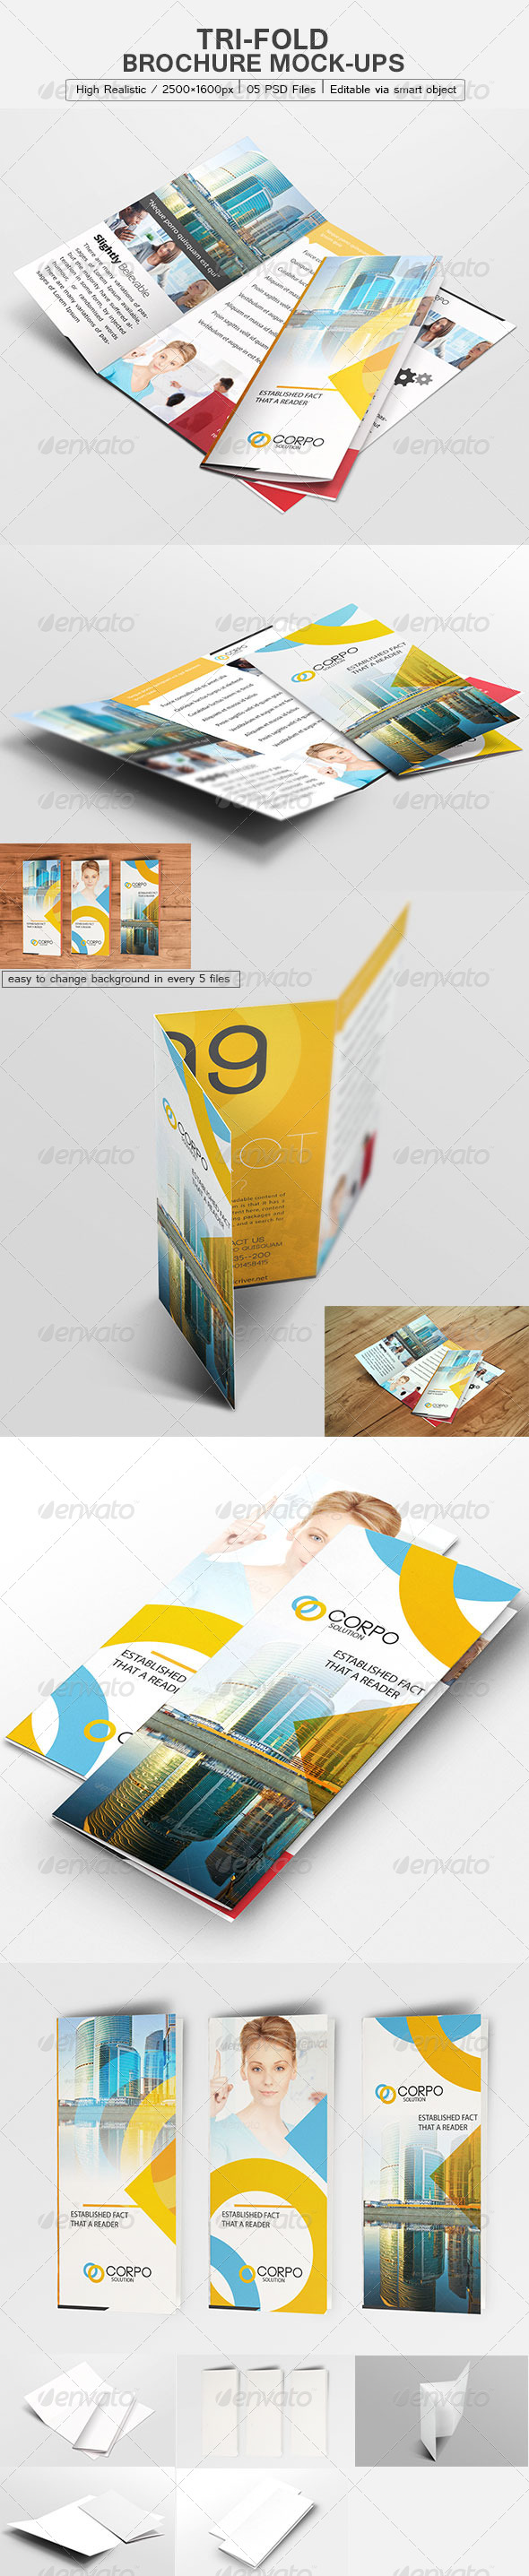 Tri-Fold Brochure Mock-Up - Brochures Print